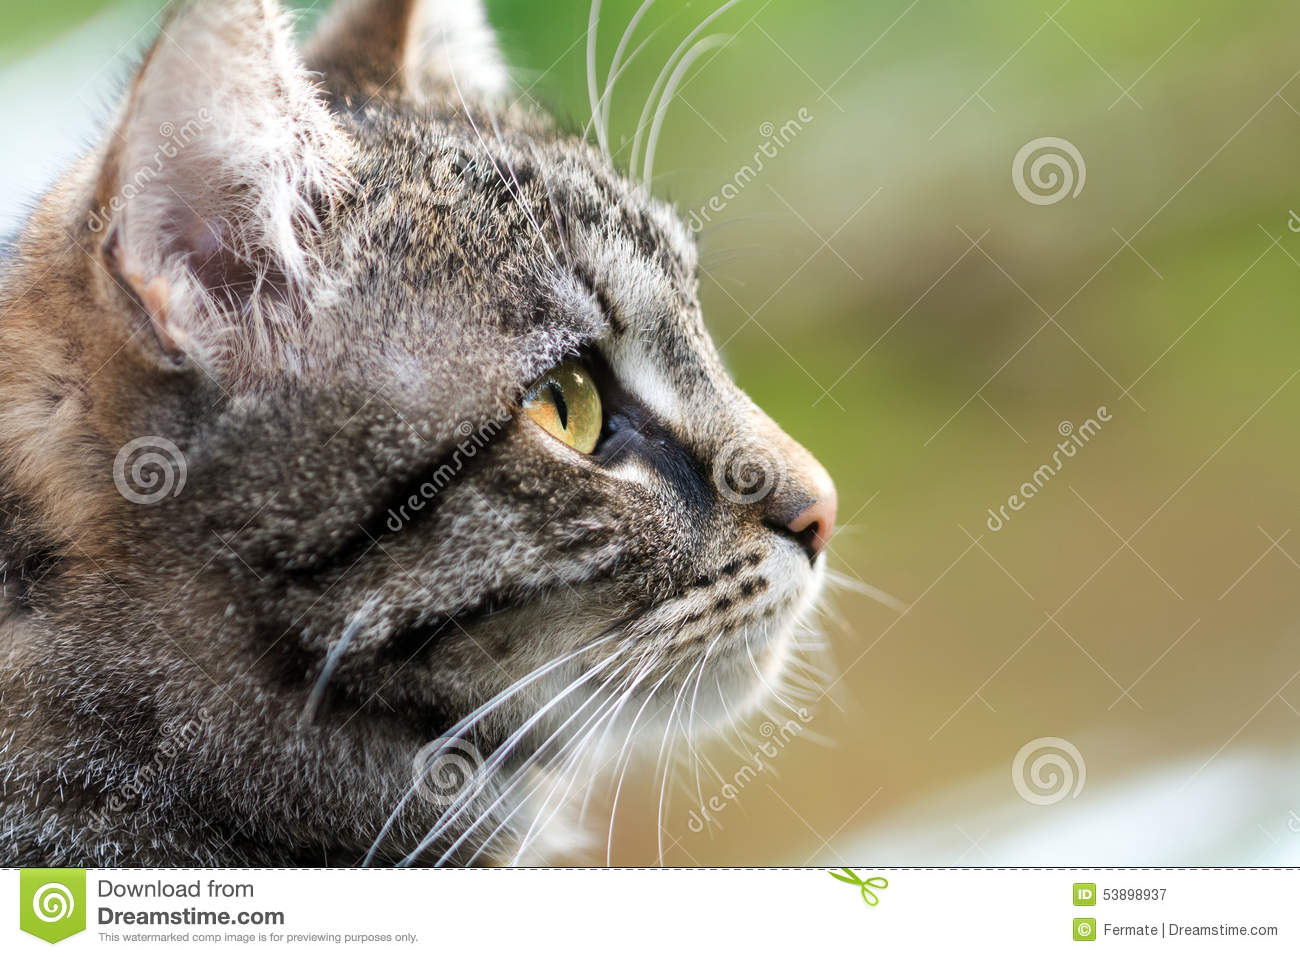 stare map with Stock Photo Tabby Cat Head Profile Close Up Copy Space Portrait Against Green Brown Background Image53898937 on Stock Photo Tabby Cat Head Profile Close Up Copy Space Portrait Against Green Brown Background Image53898937 furthermore Royalty Free Stock Images Walrus Cartoon Image25901119 also 18 Foot Python Captured Florida Everglades further Stock Image Old Farmers Threshing Wheat Animals Vintage Country House Two Girls Looking Work Image35693491 in addition Royalty Free Stock Image Usa National Flag Image5169146.